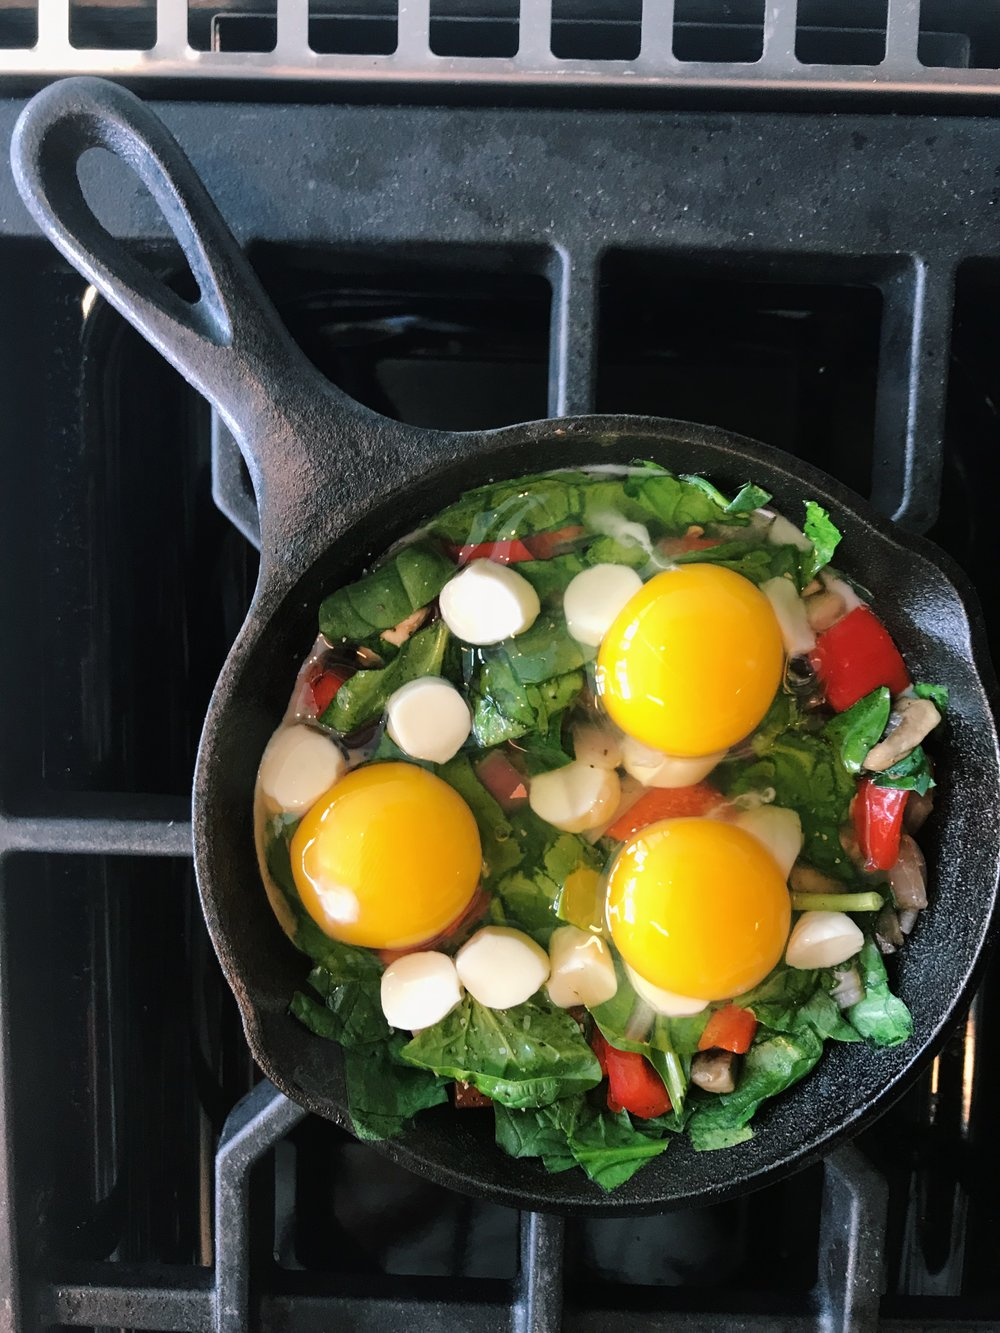 Add cheese last. Gently crack eggs over veggies then place in oven for 15 minutes, checking at 10 minutes for desired consistency.